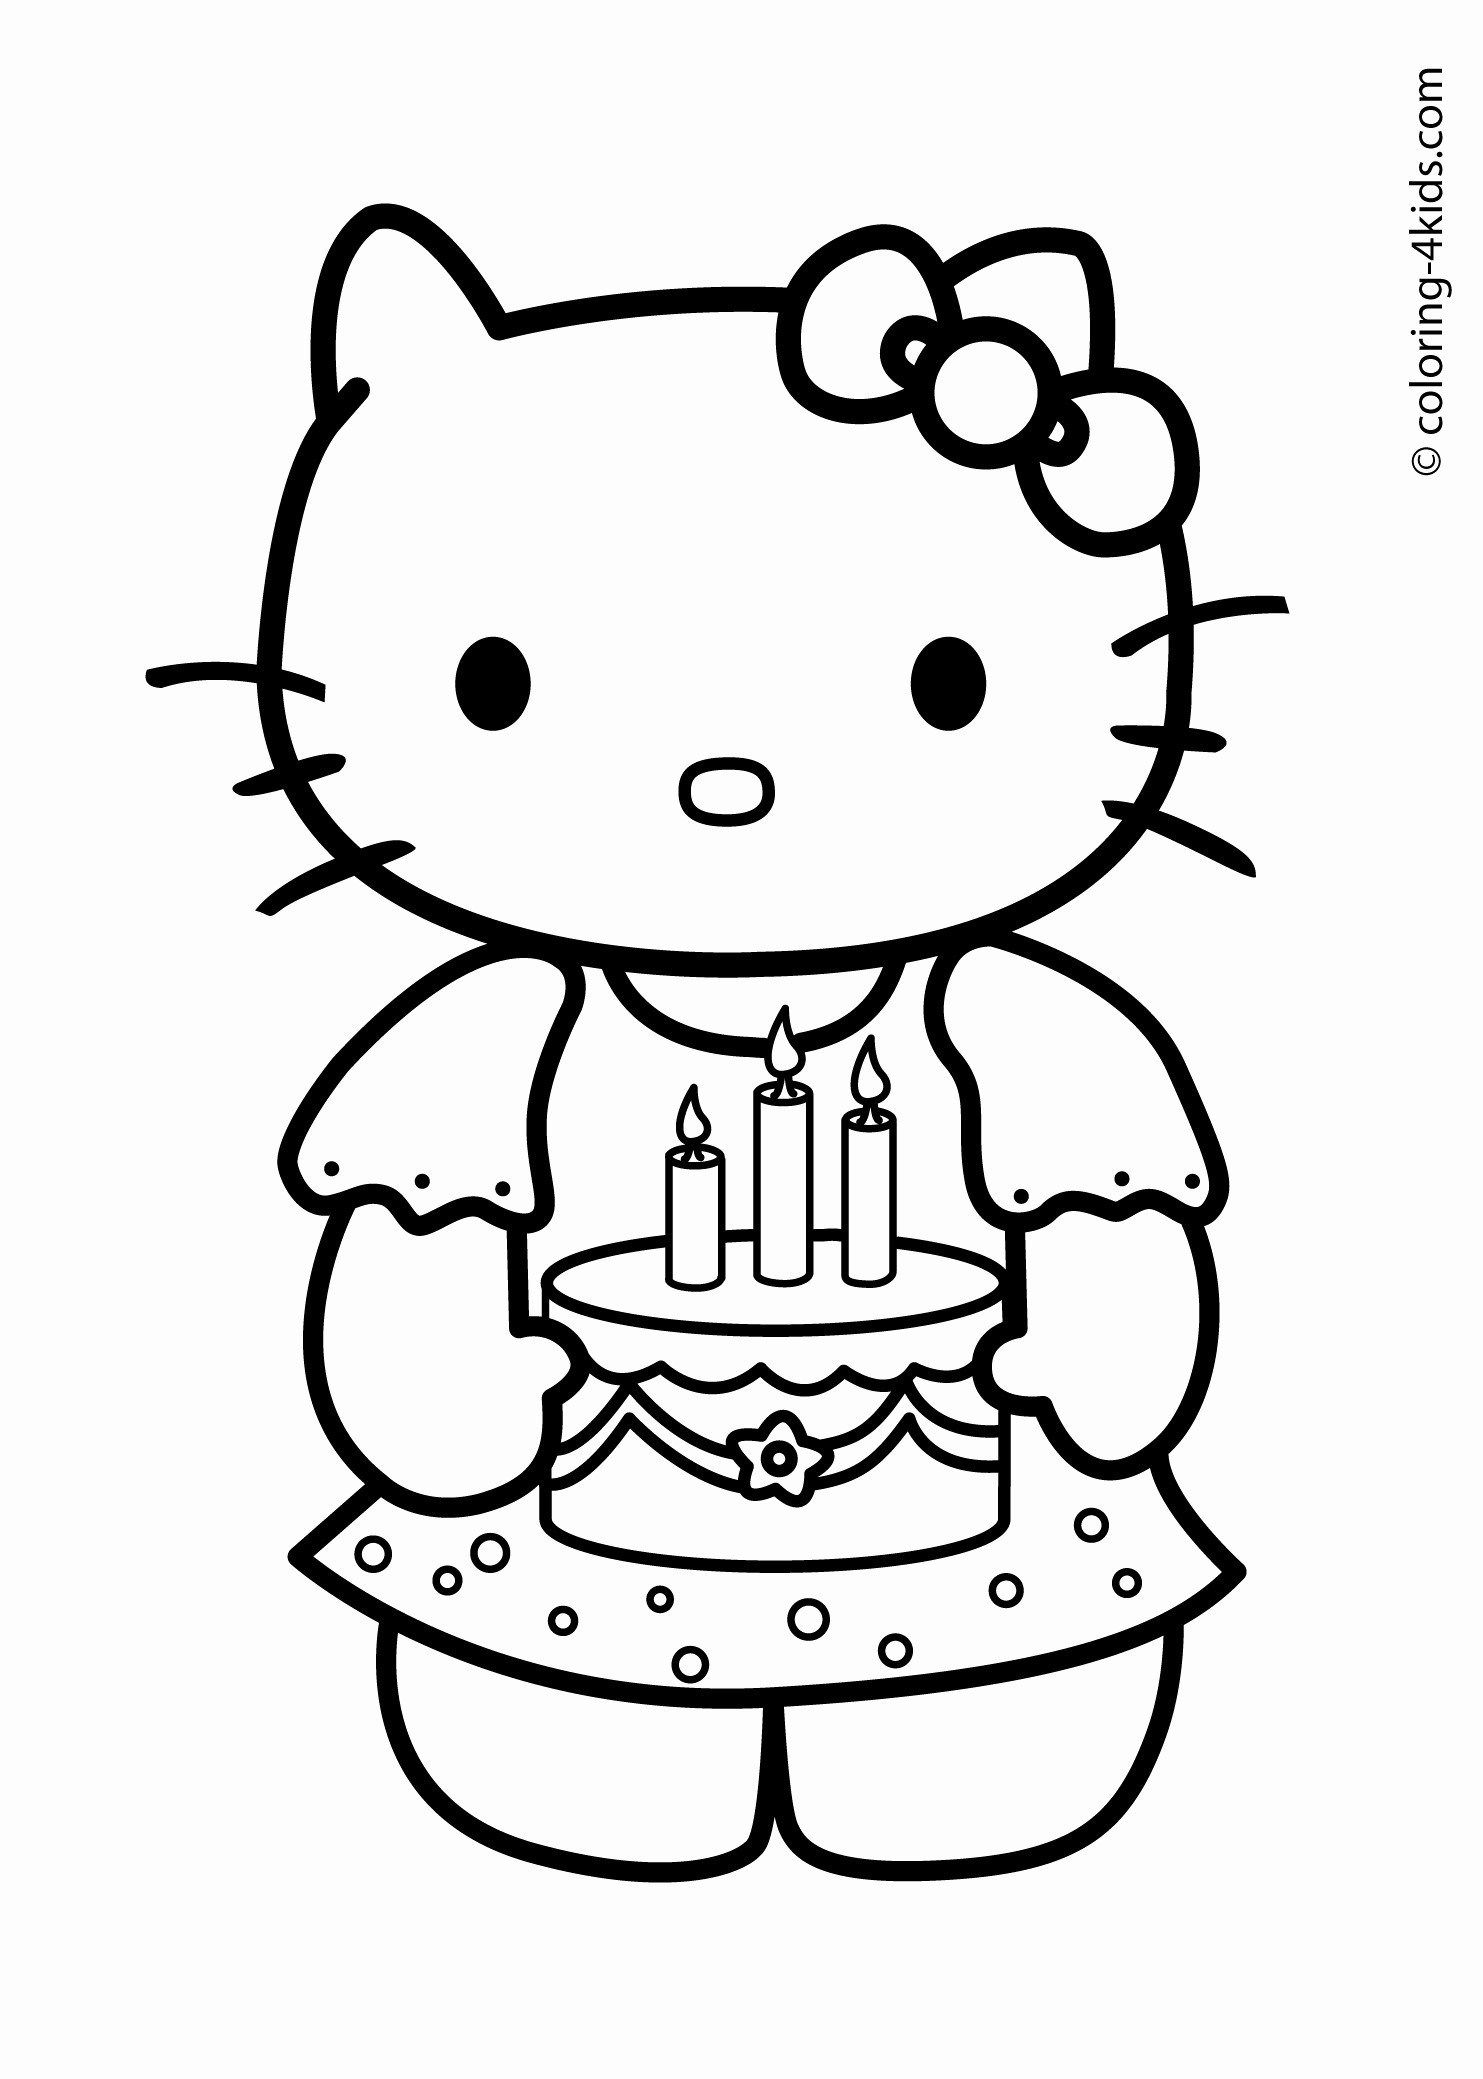 24 Elegant Picture Of Coloring Pages You Can Color On The Computer Davemelillo Com Happy Birthday Coloring Pages Hello Kitty Coloring Birthday Coloring Pages